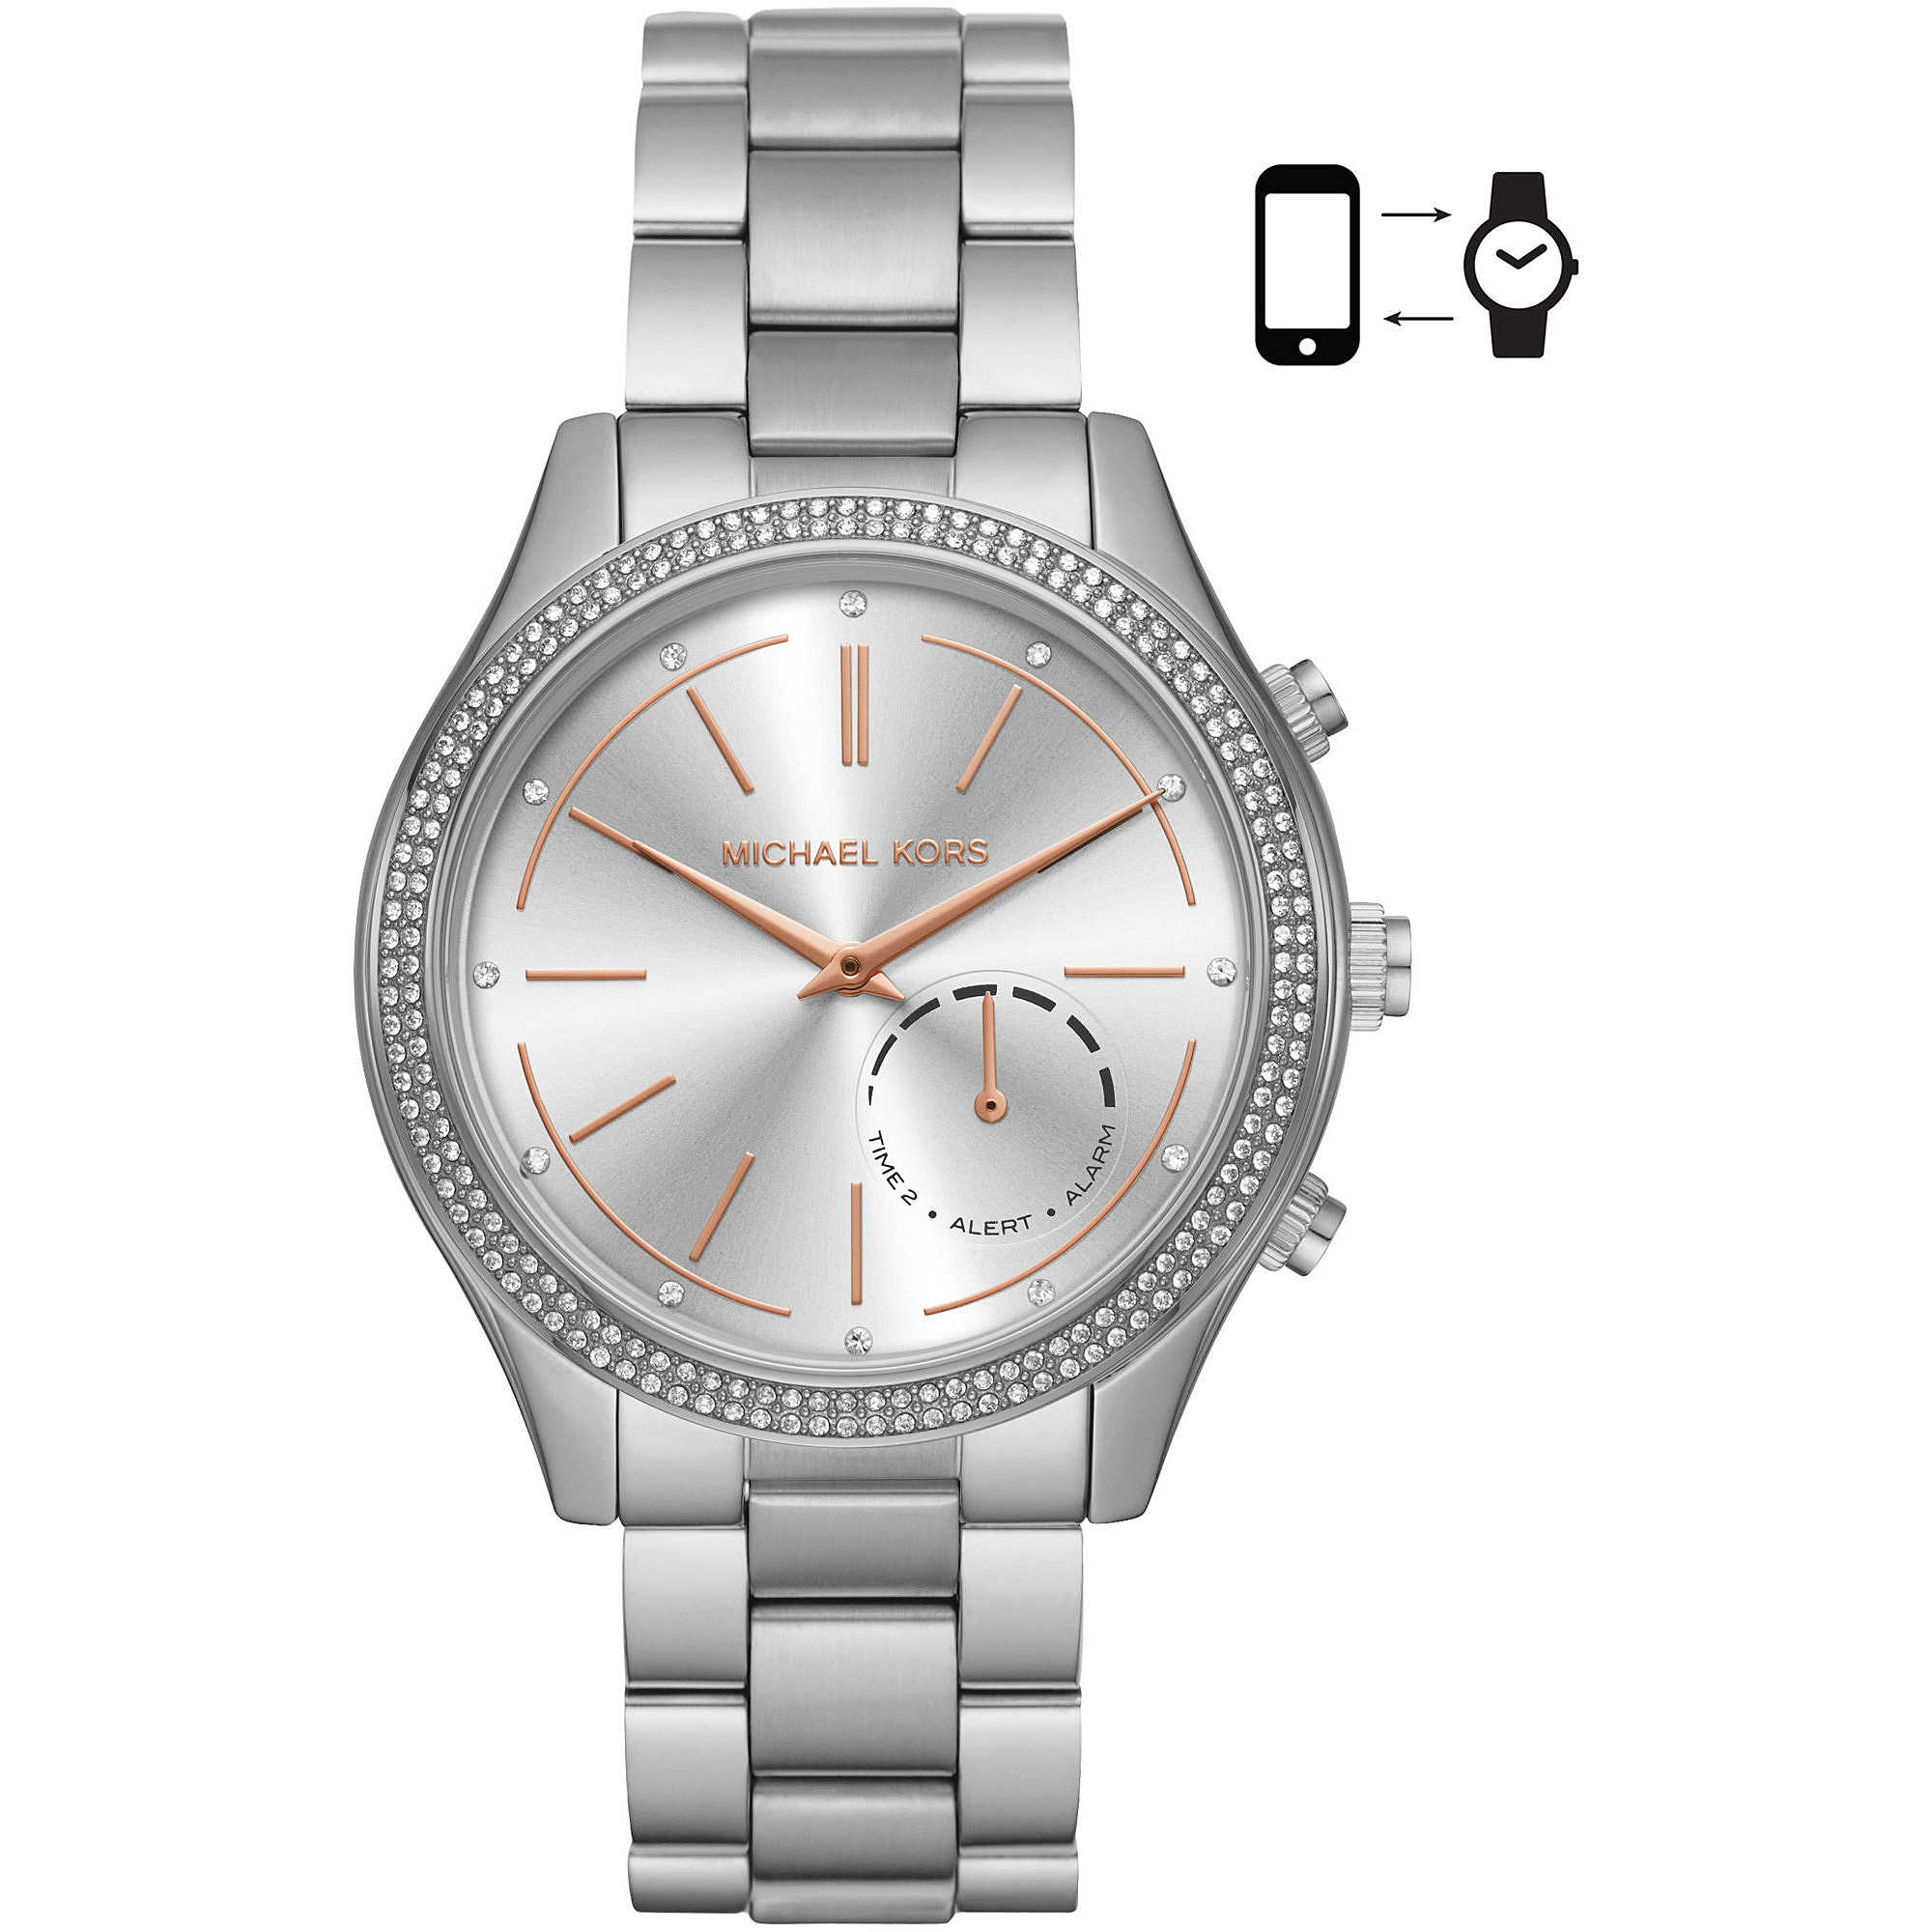 54dad77c57a9 watch Smartwatch woman Michael Kors Slim Runway MKT4004 Smartwatches ...